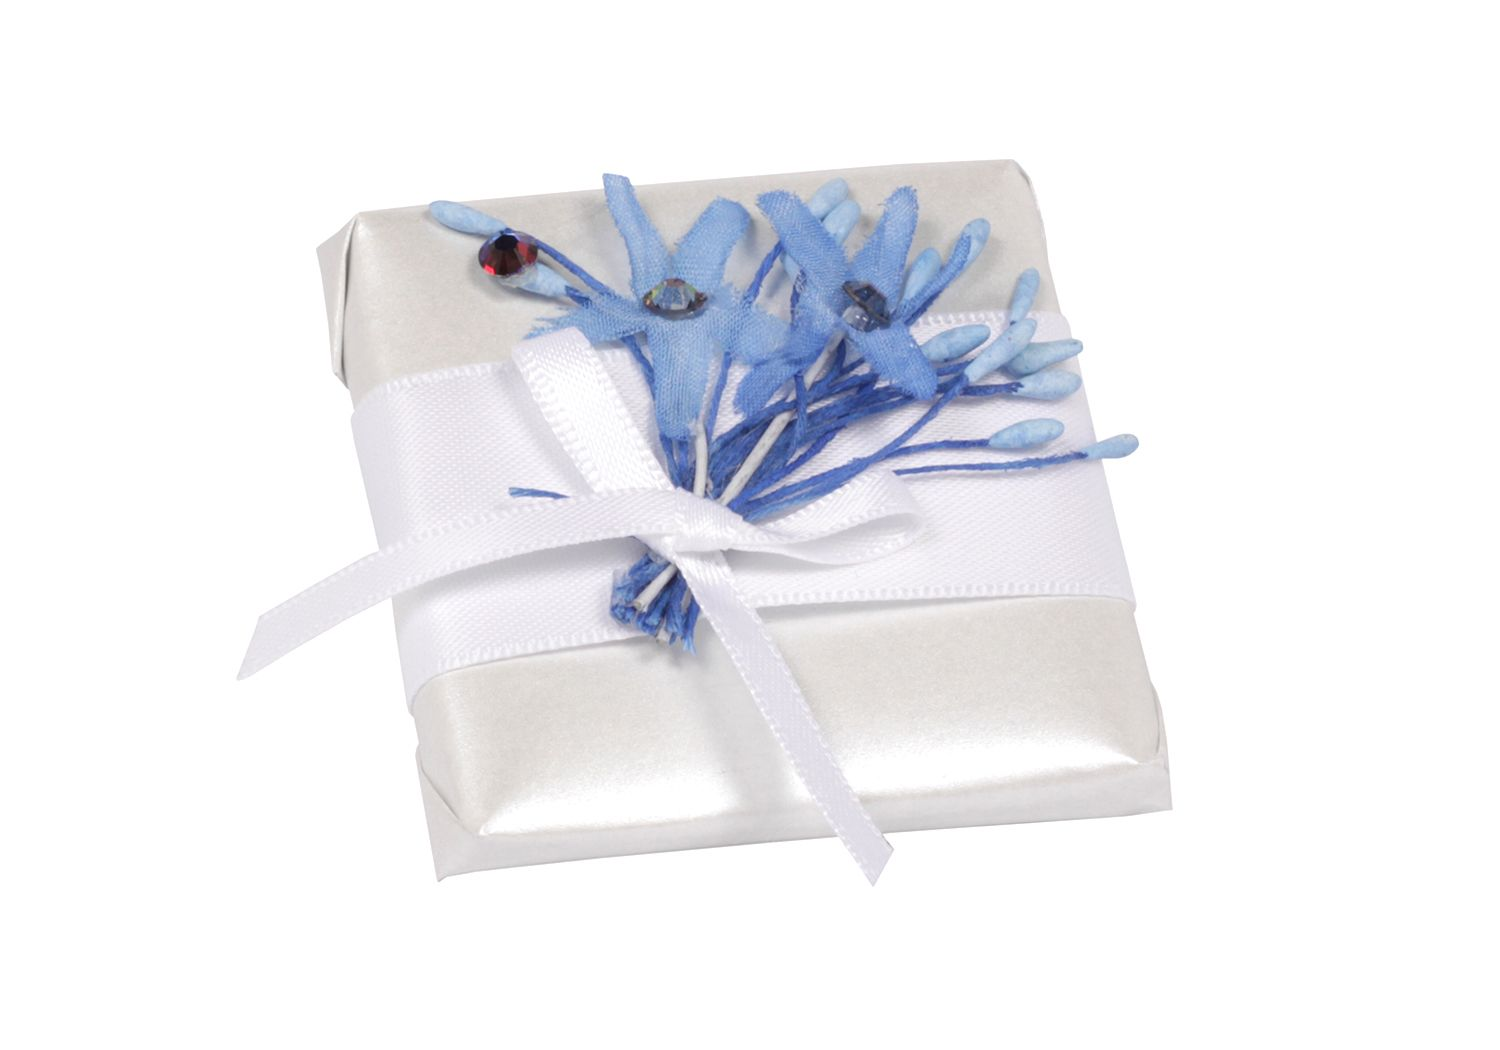 Patchi\'s Pretty in Blue (Large) Wedding Favor - $5.00 | Patchi ...